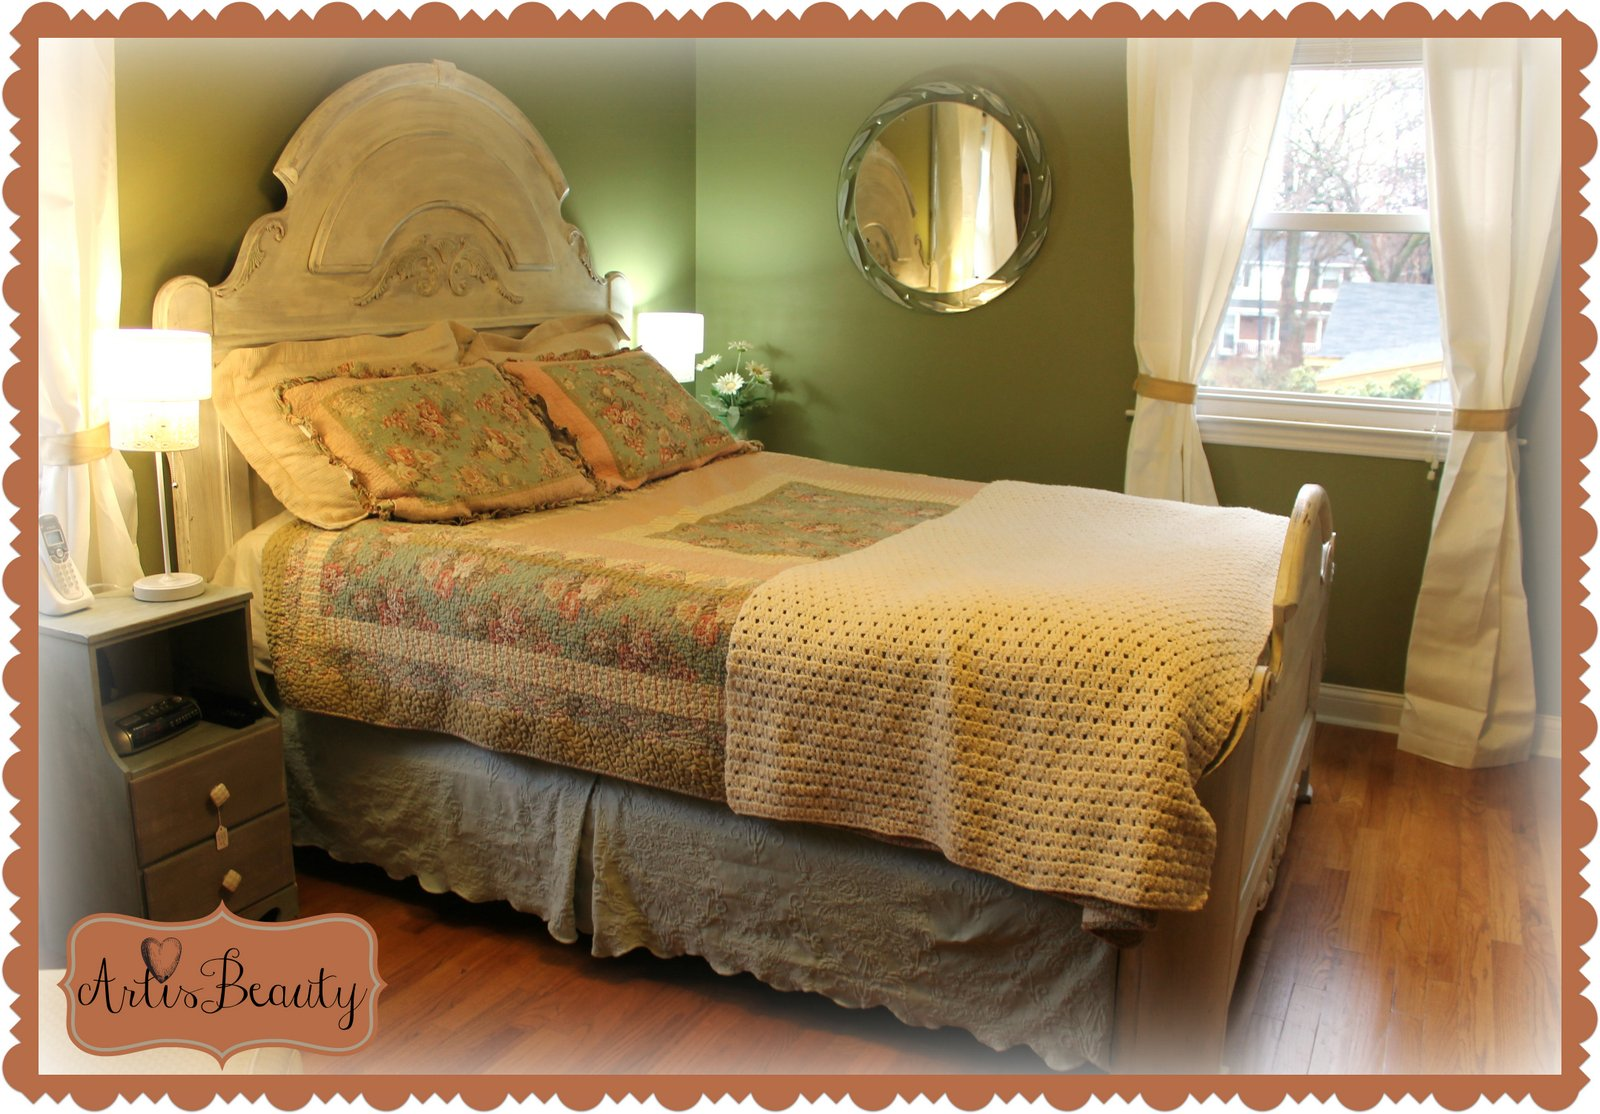 Art is beauty shabby chic french master bedroom makeover for French master bedroom